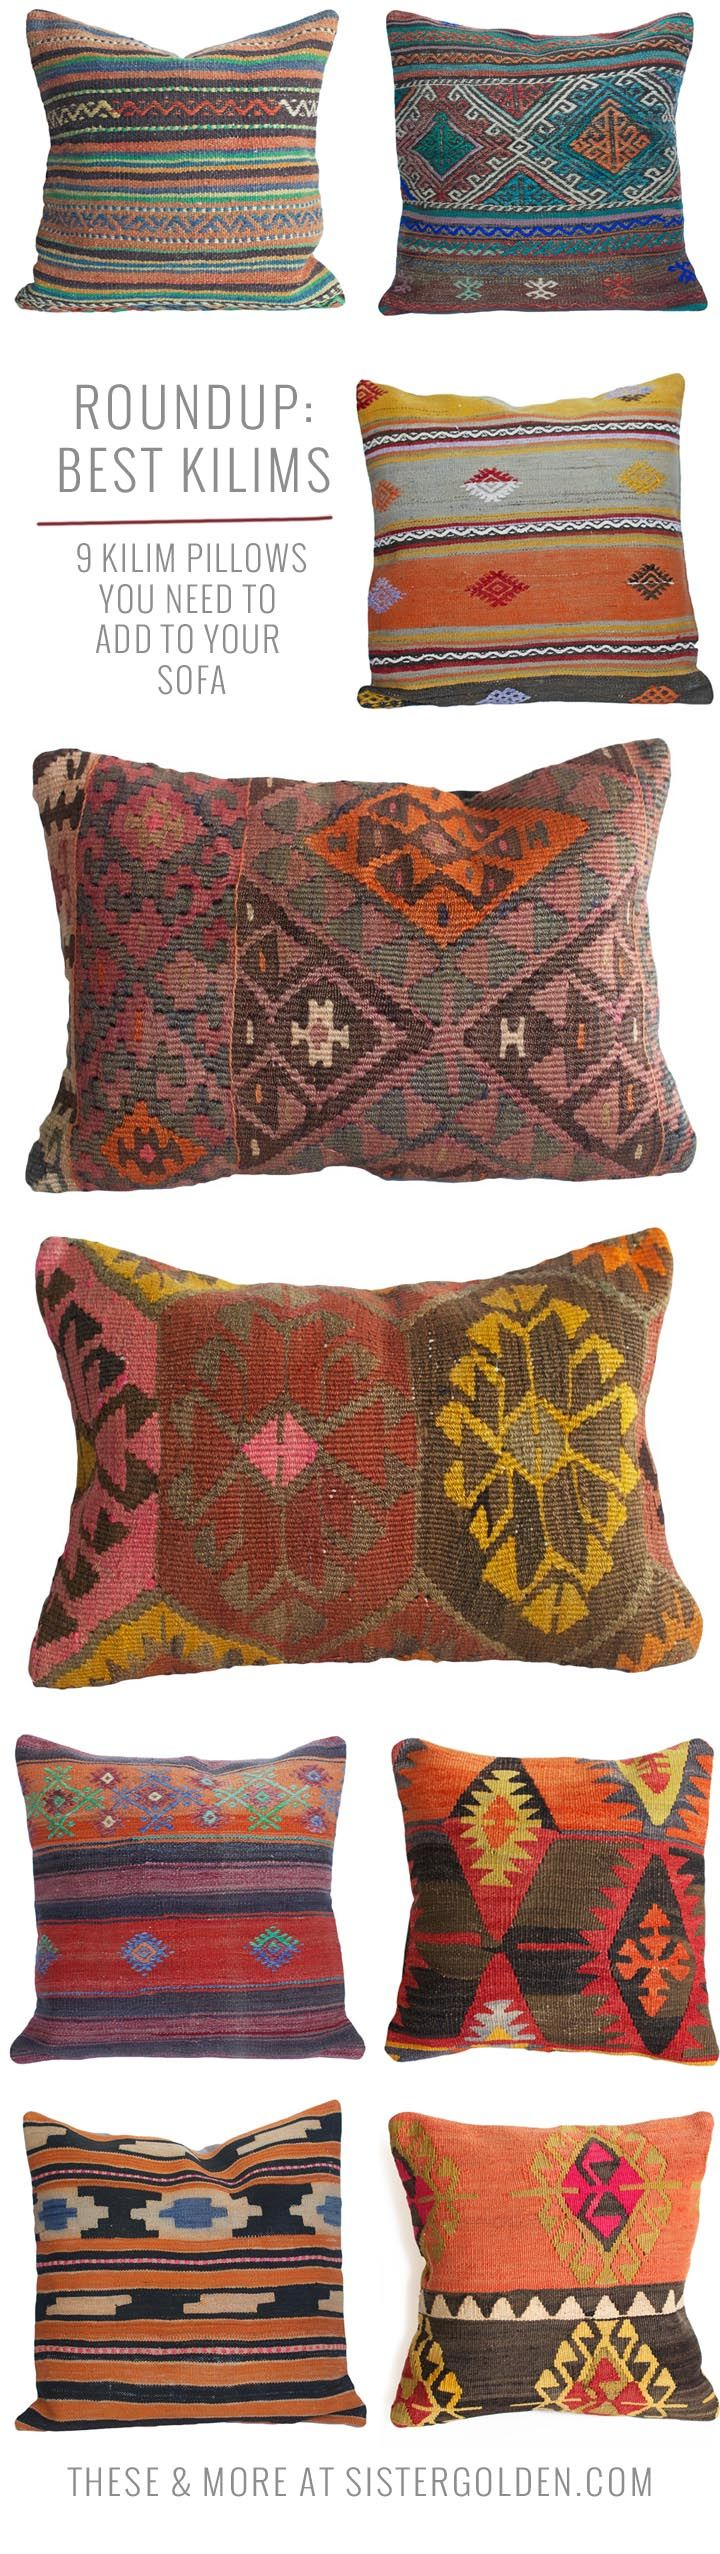 9 Kilim pillows you need to add to your sofa!